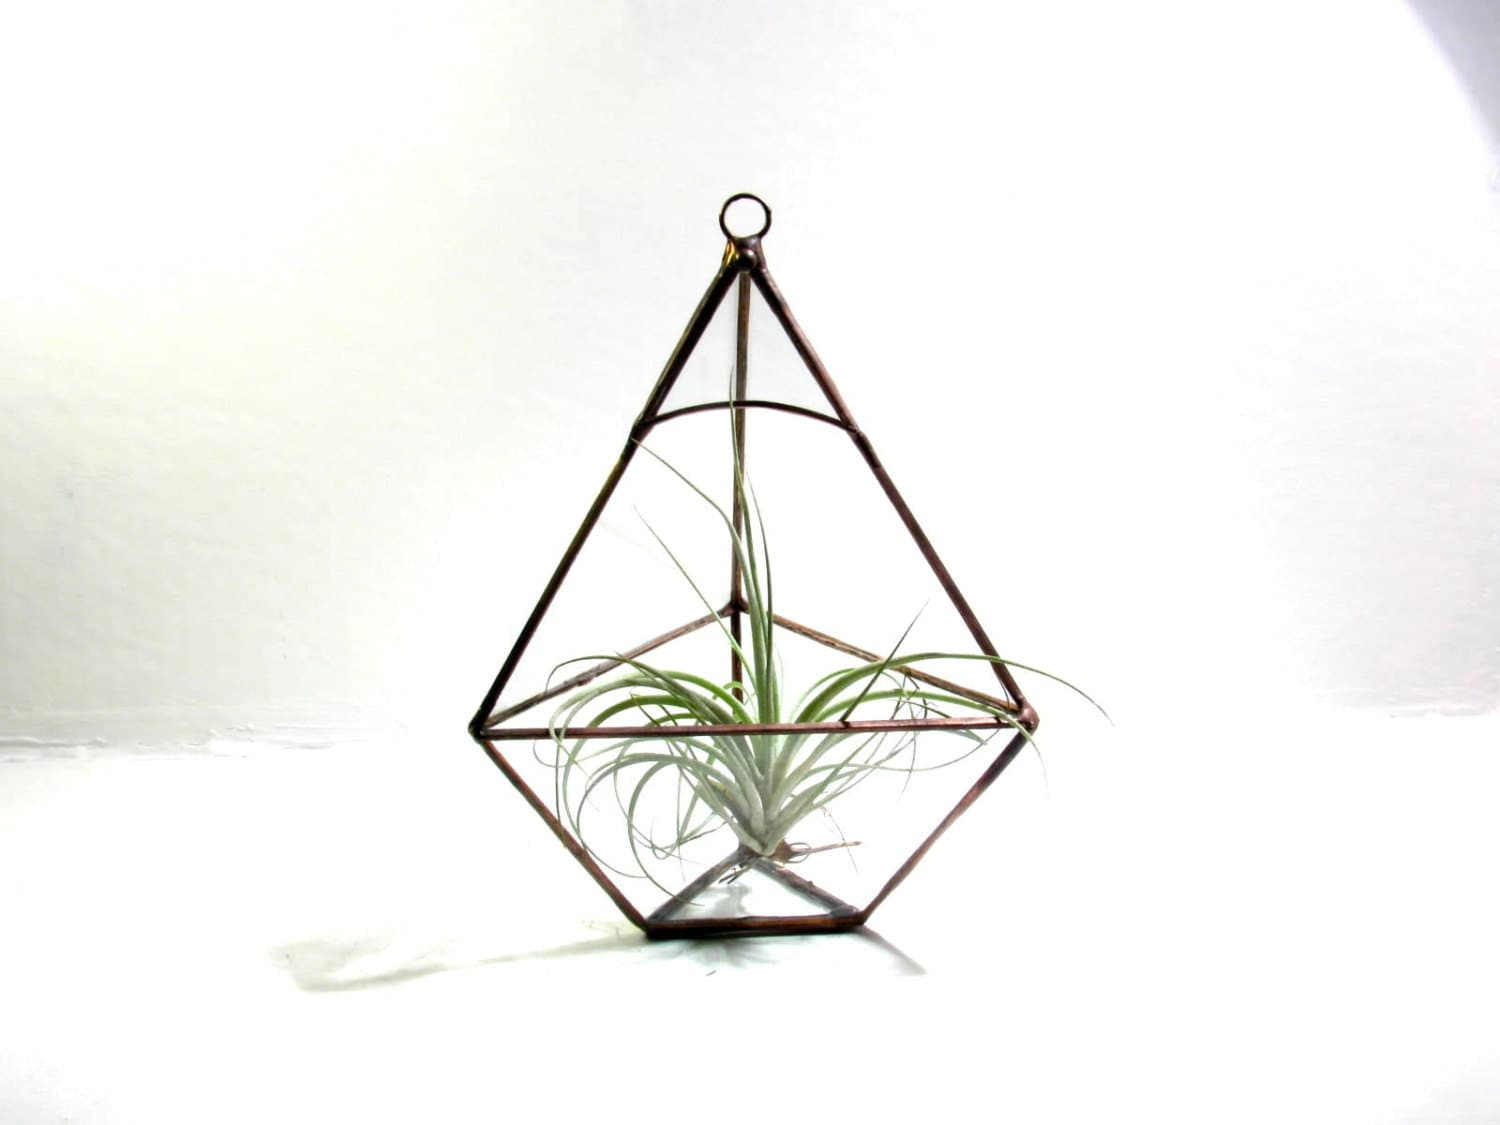 Terrarium - Air Plant -  Geometric Pyramid Terrarium - DIY Pyramid Kit - lonesomehobo